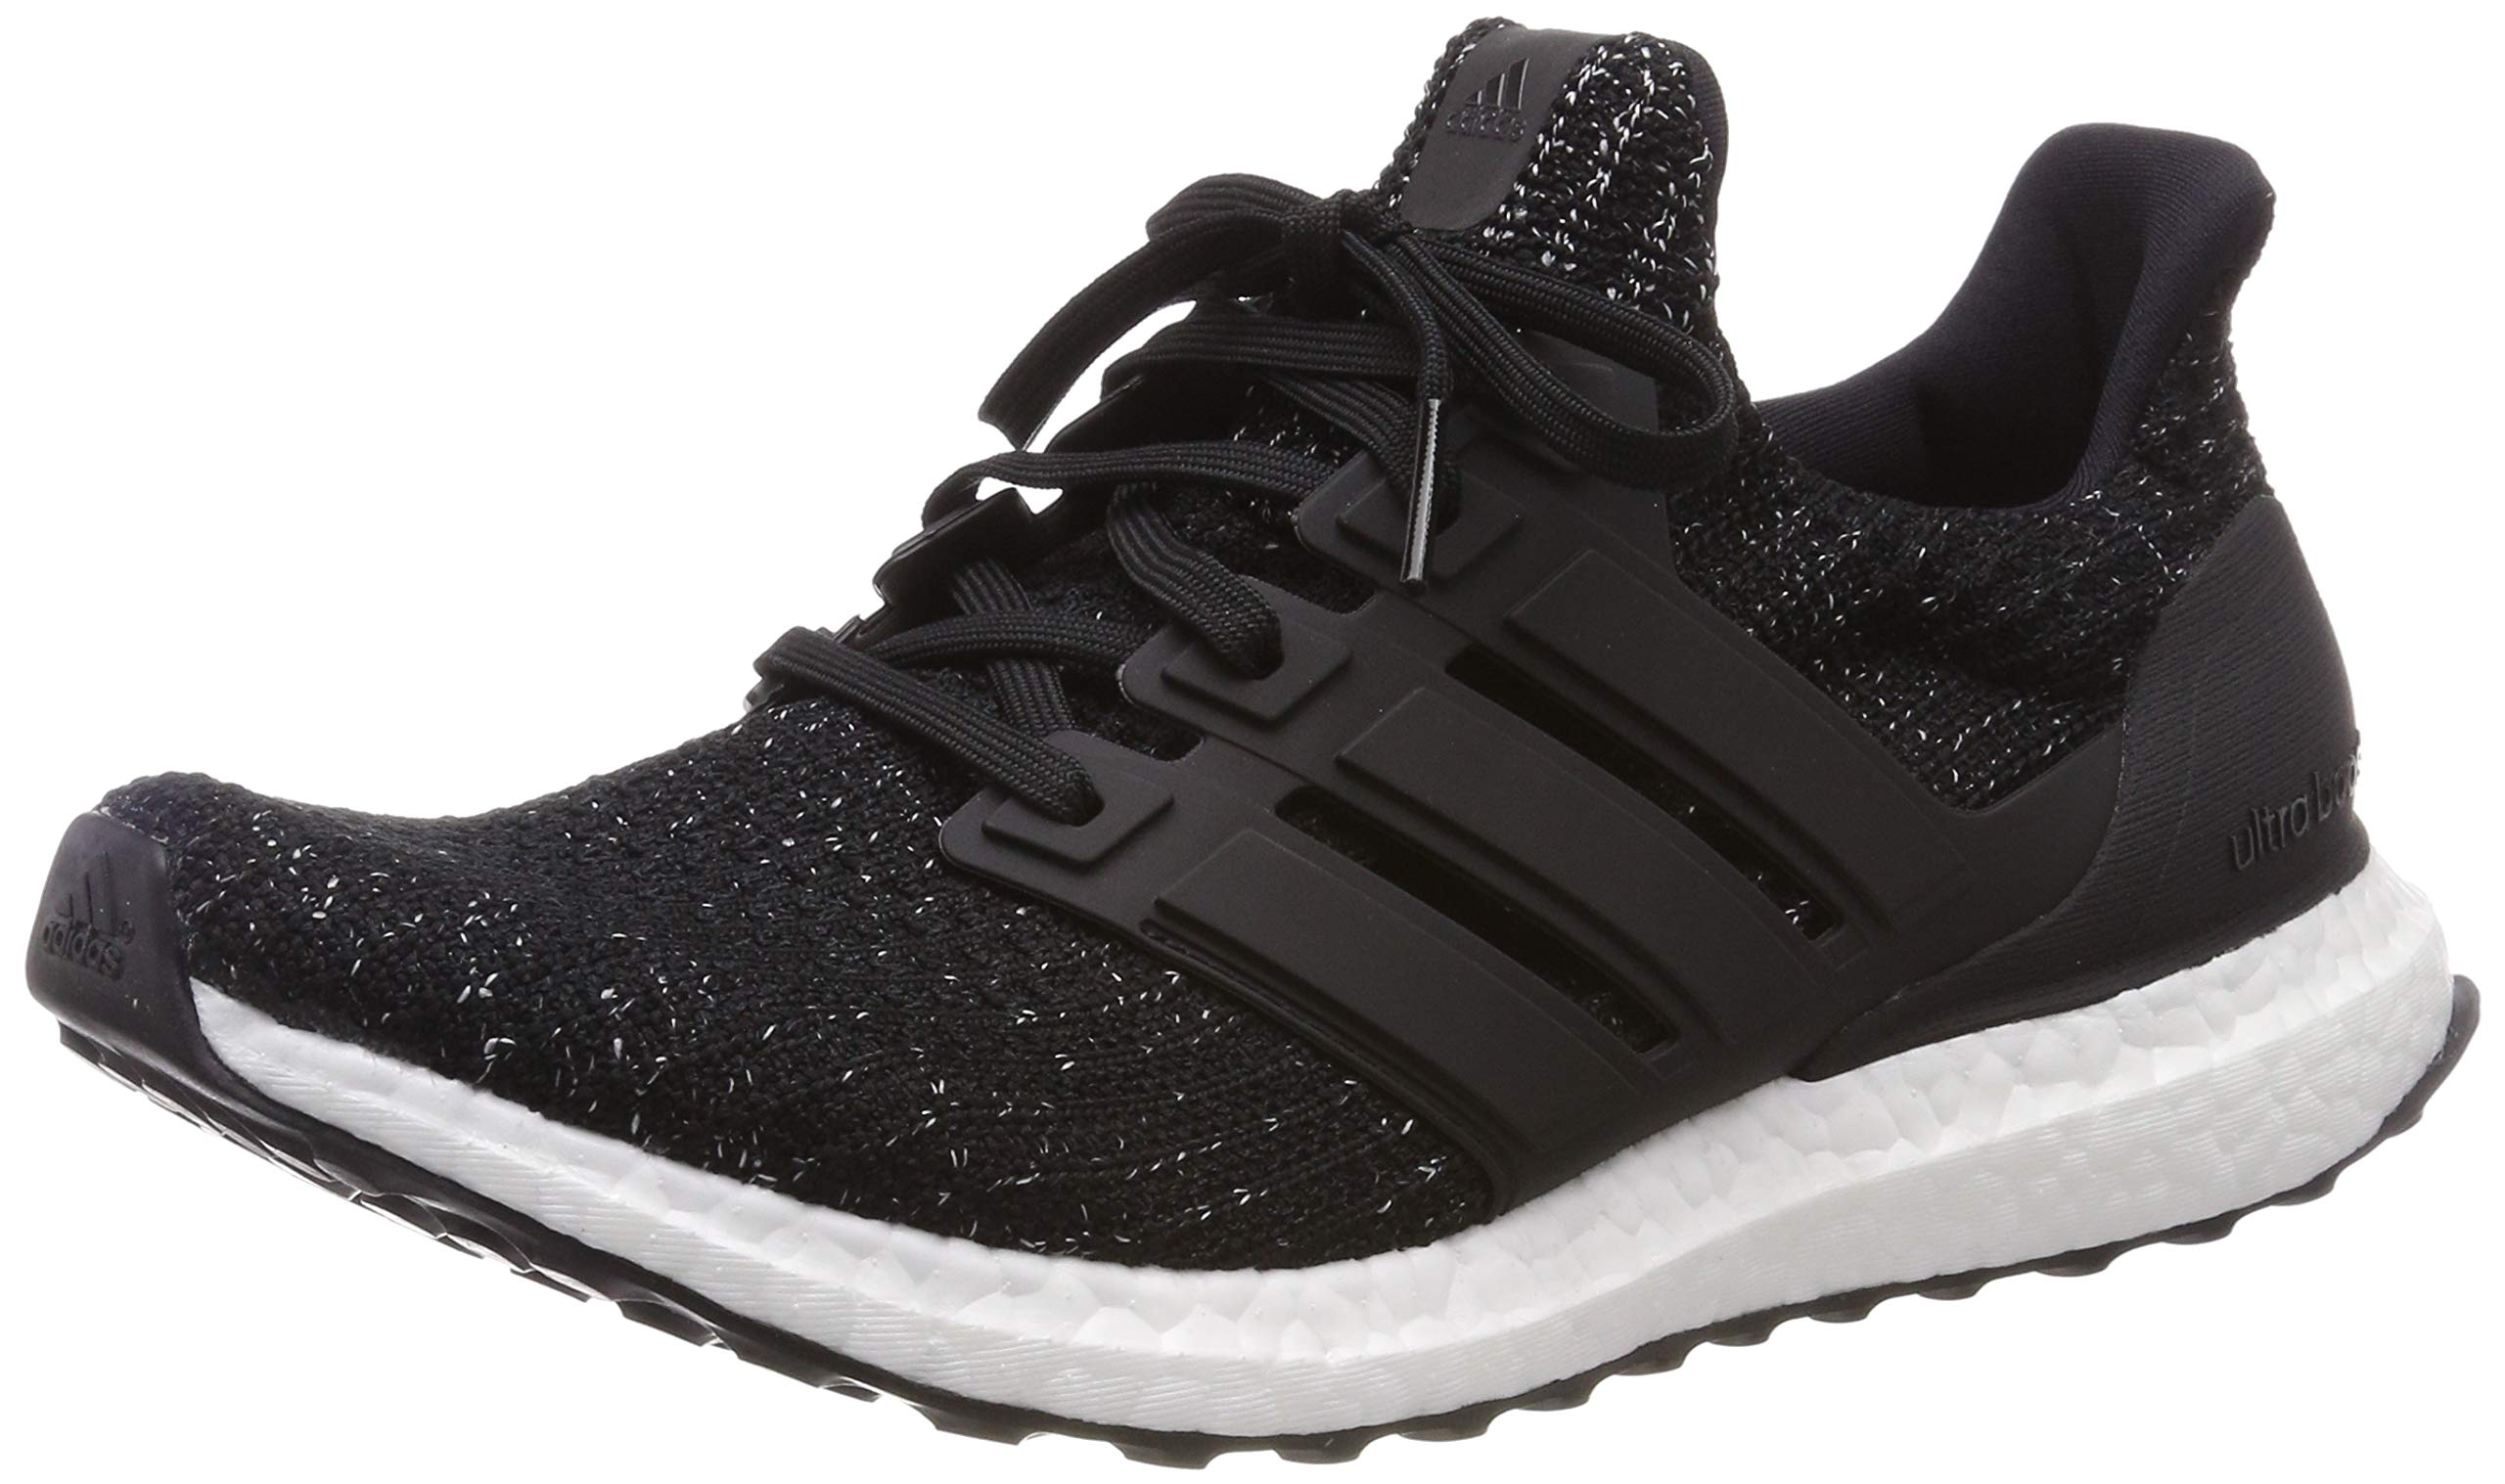 fe76f0af568 Adidas Ultra Boost 4.0 Size 11 Top Deals   Lowest Price ...